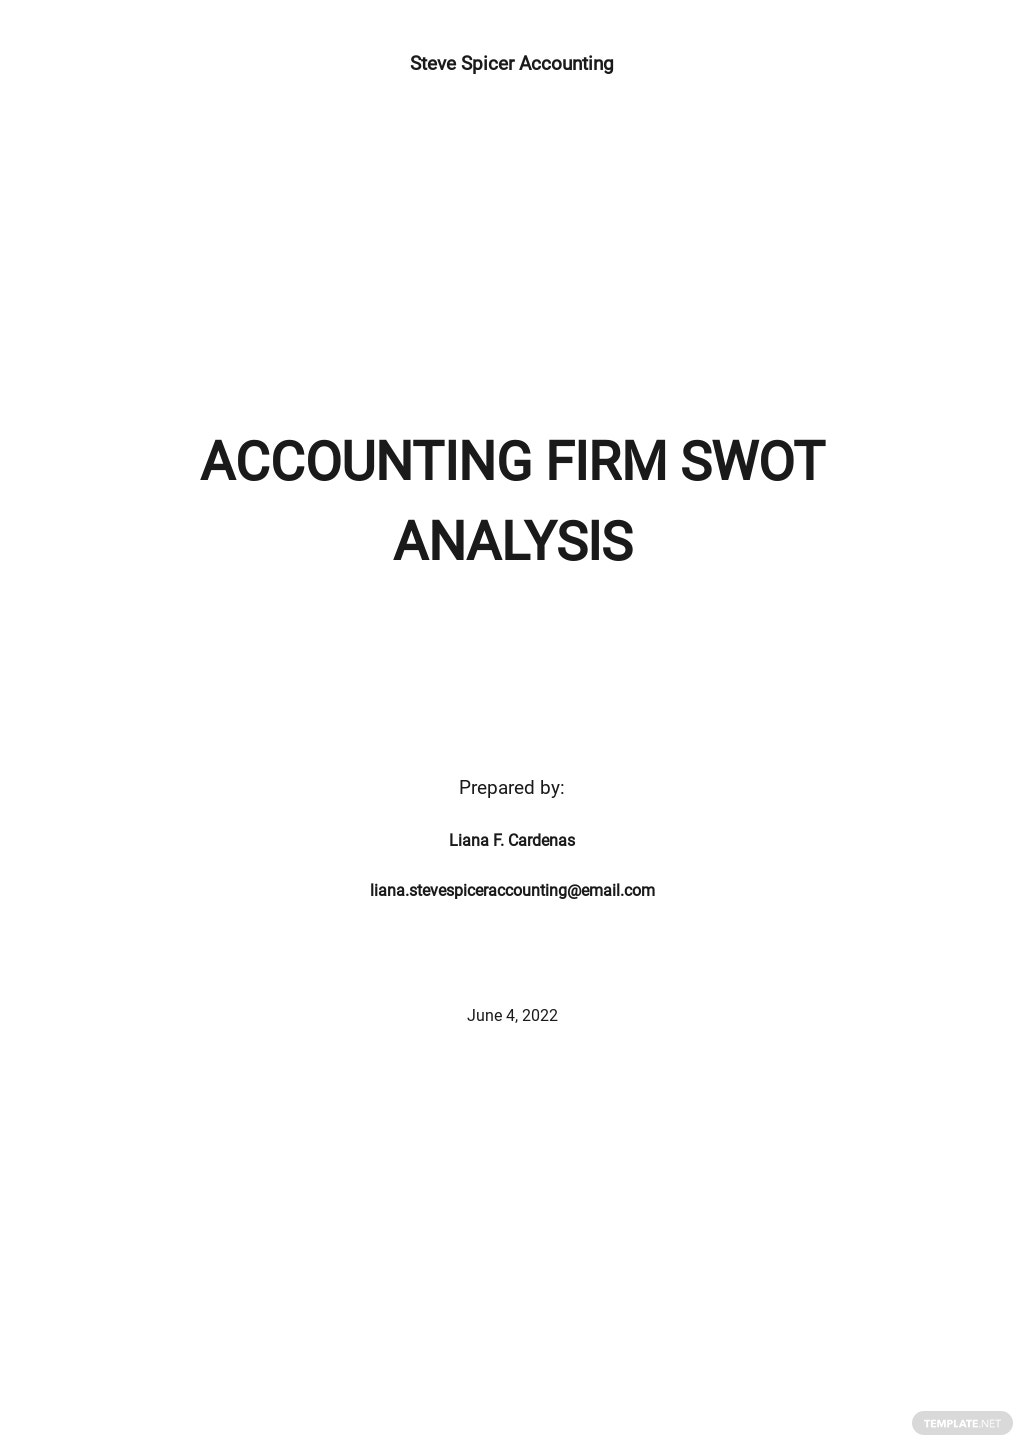 Accounting Firm SWOT Analysis Template.jpe